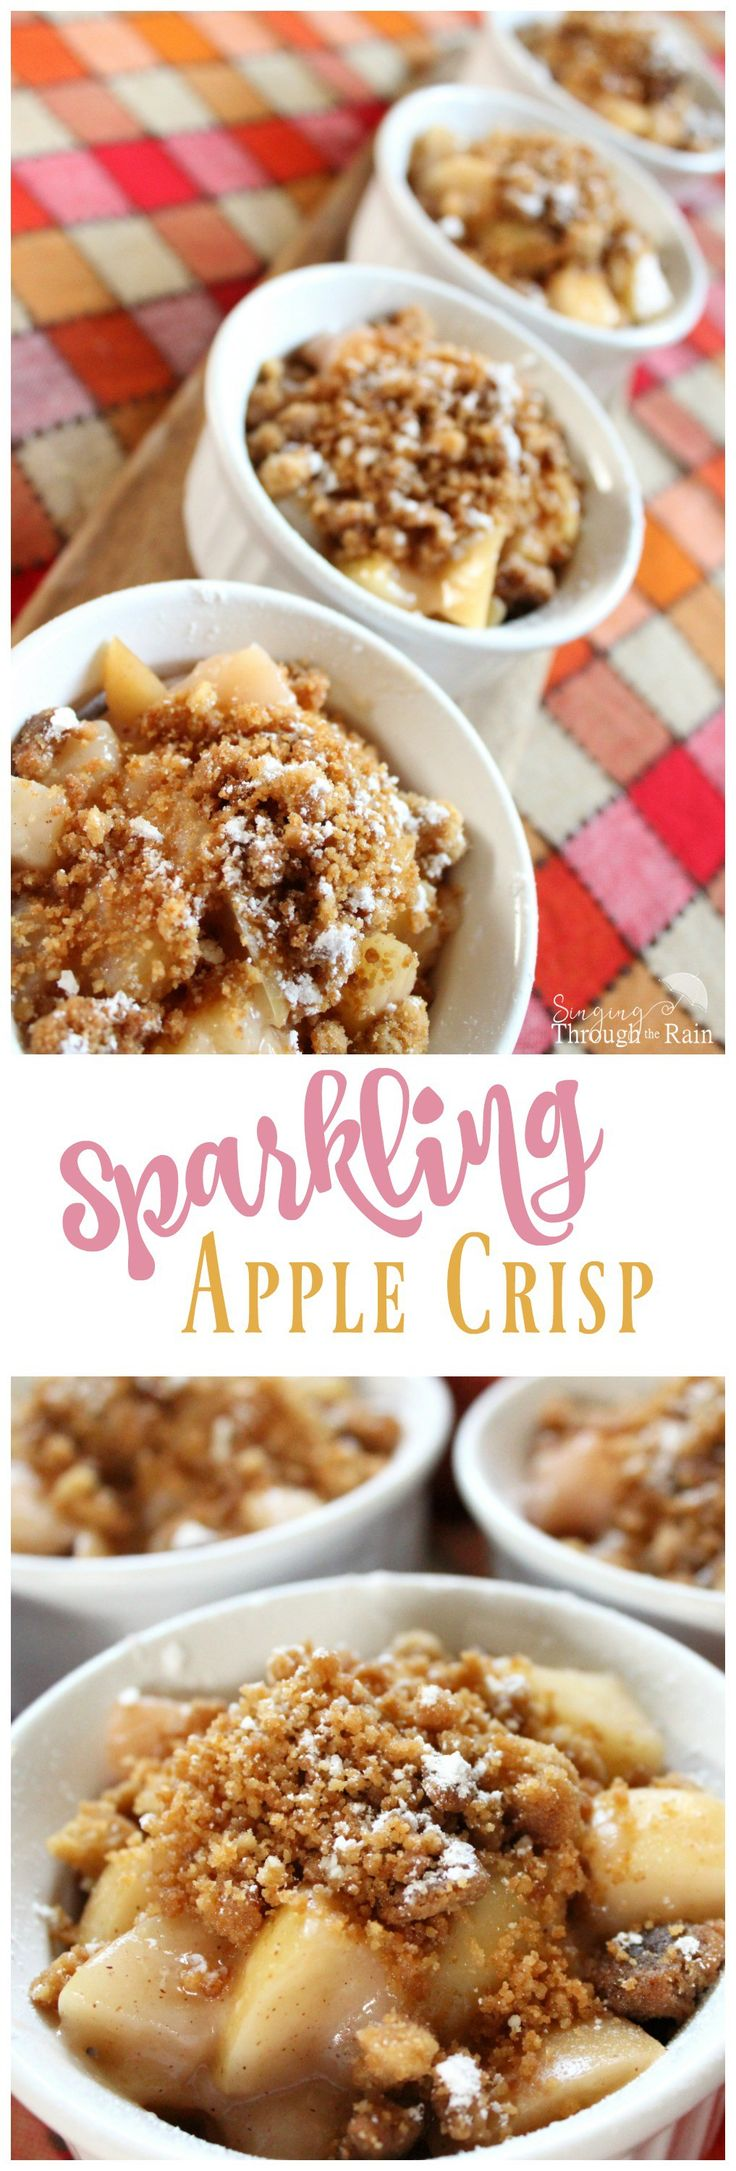 With Delicious Gala apples, warm buttery goodness, and a bit of cinnamon and brown sugar, you can almost taste the flavor from these pictures!